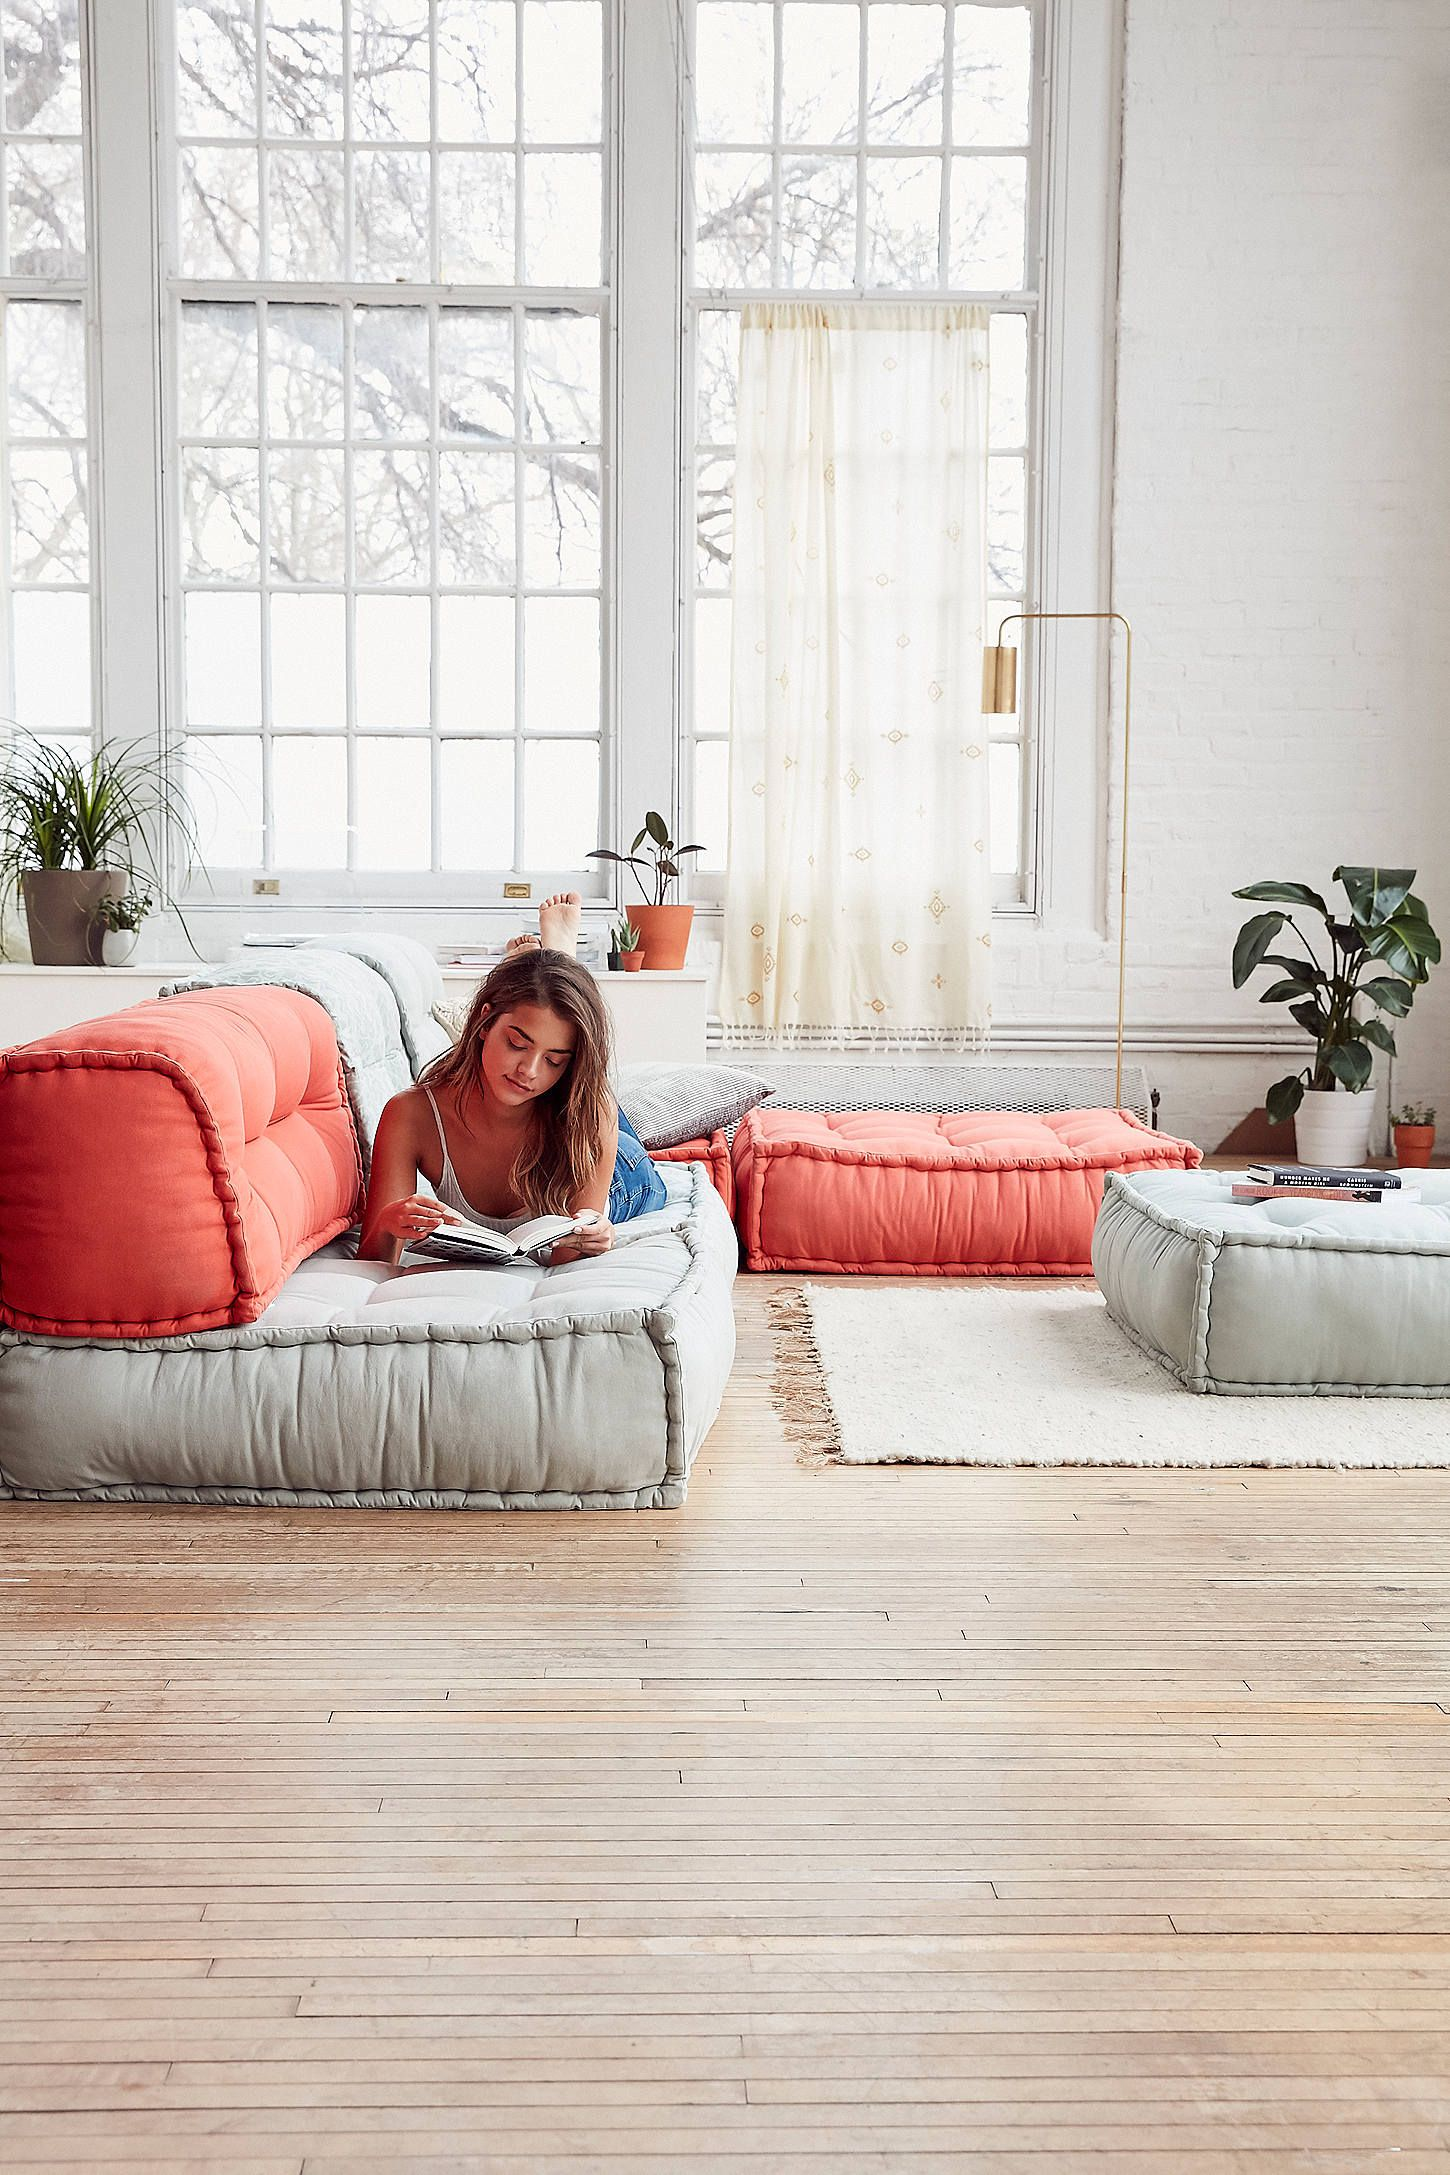 Get The Floor Cushion And Backrest Reema At Urban Outers Today We Carry All Latest Styles Colors Brands For You To Choose From